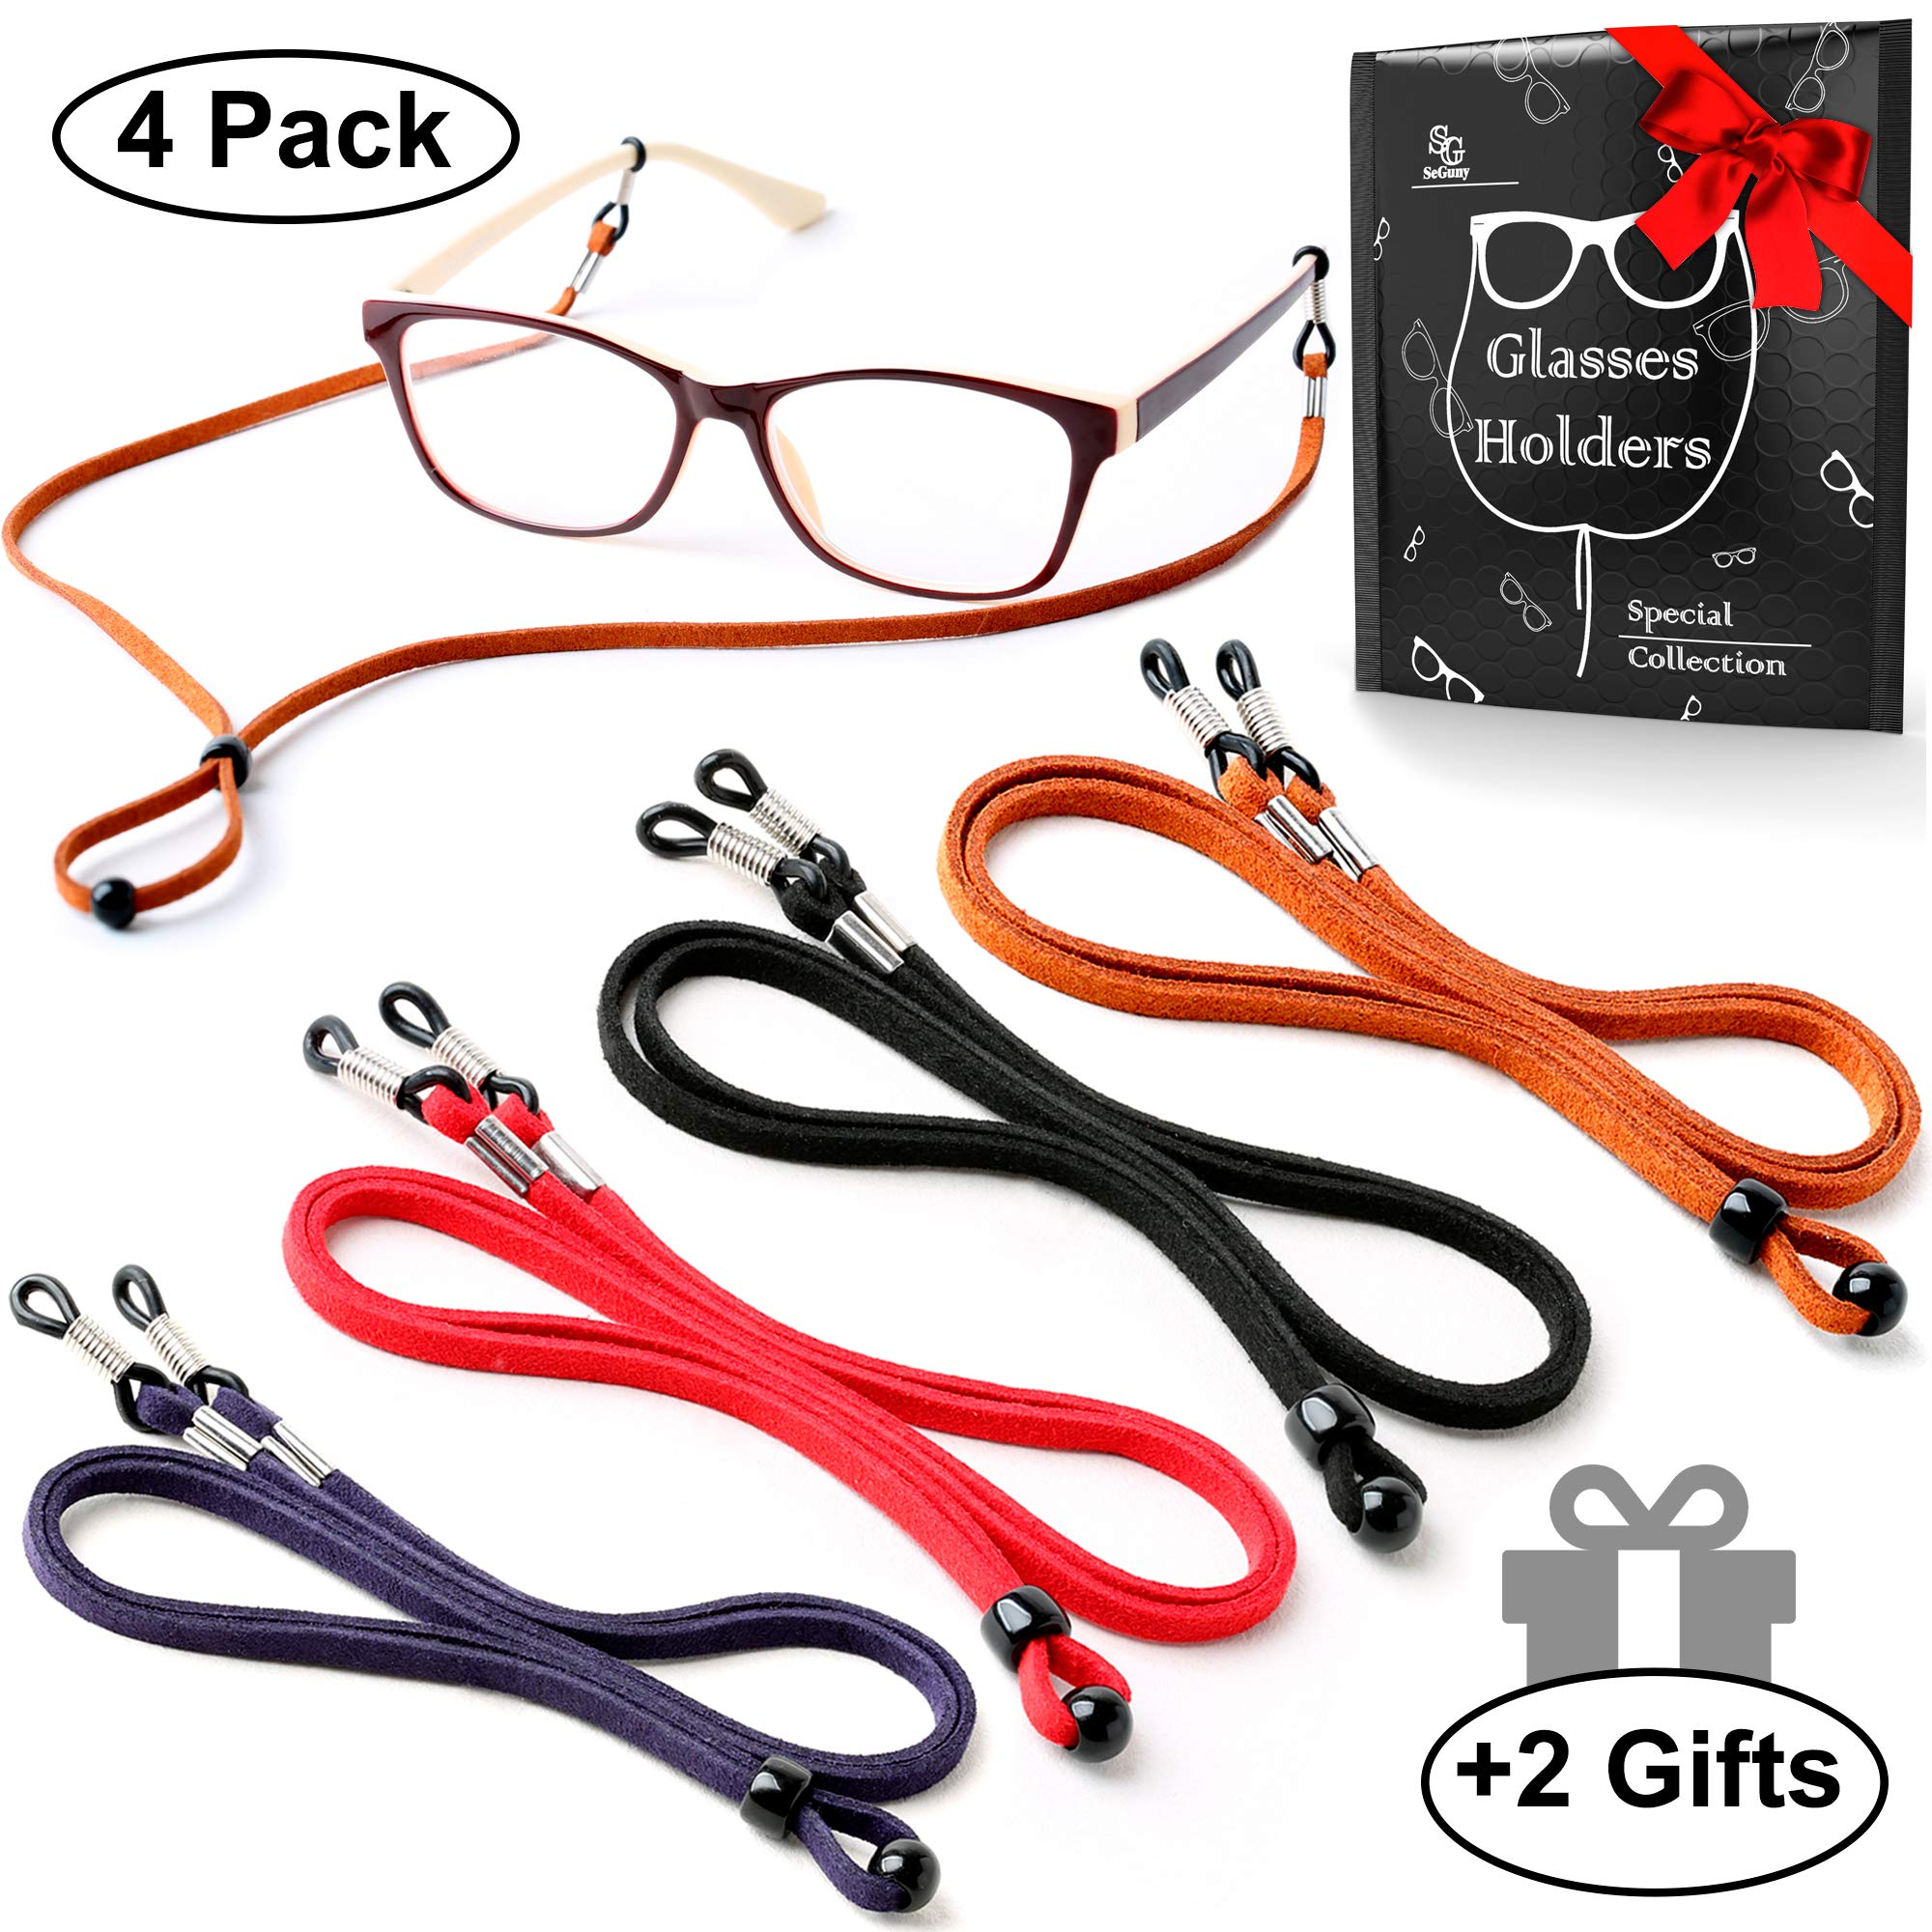 Eyewear Accessories Chic Women Beading Sunglasses Chains For Eyewear Lanyards Ladies Girls Reading Glasses Chain Cord Holder Neck Strap Ropes C286